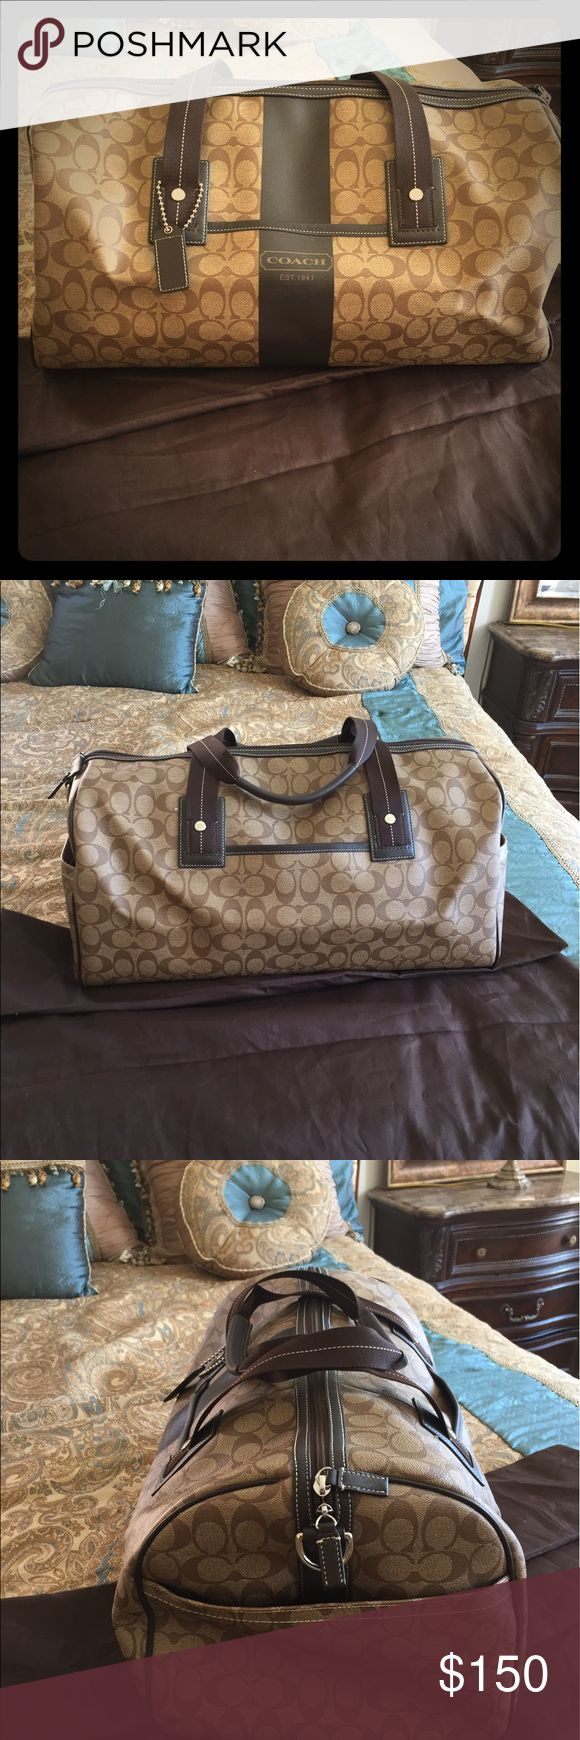 Gently Used Authentic Coach Travel Bag Used maybe twice! Excellent condition shows little to no signs of wear. Sorry I do not have the box or dust bag. Coach Bags Travel Bags